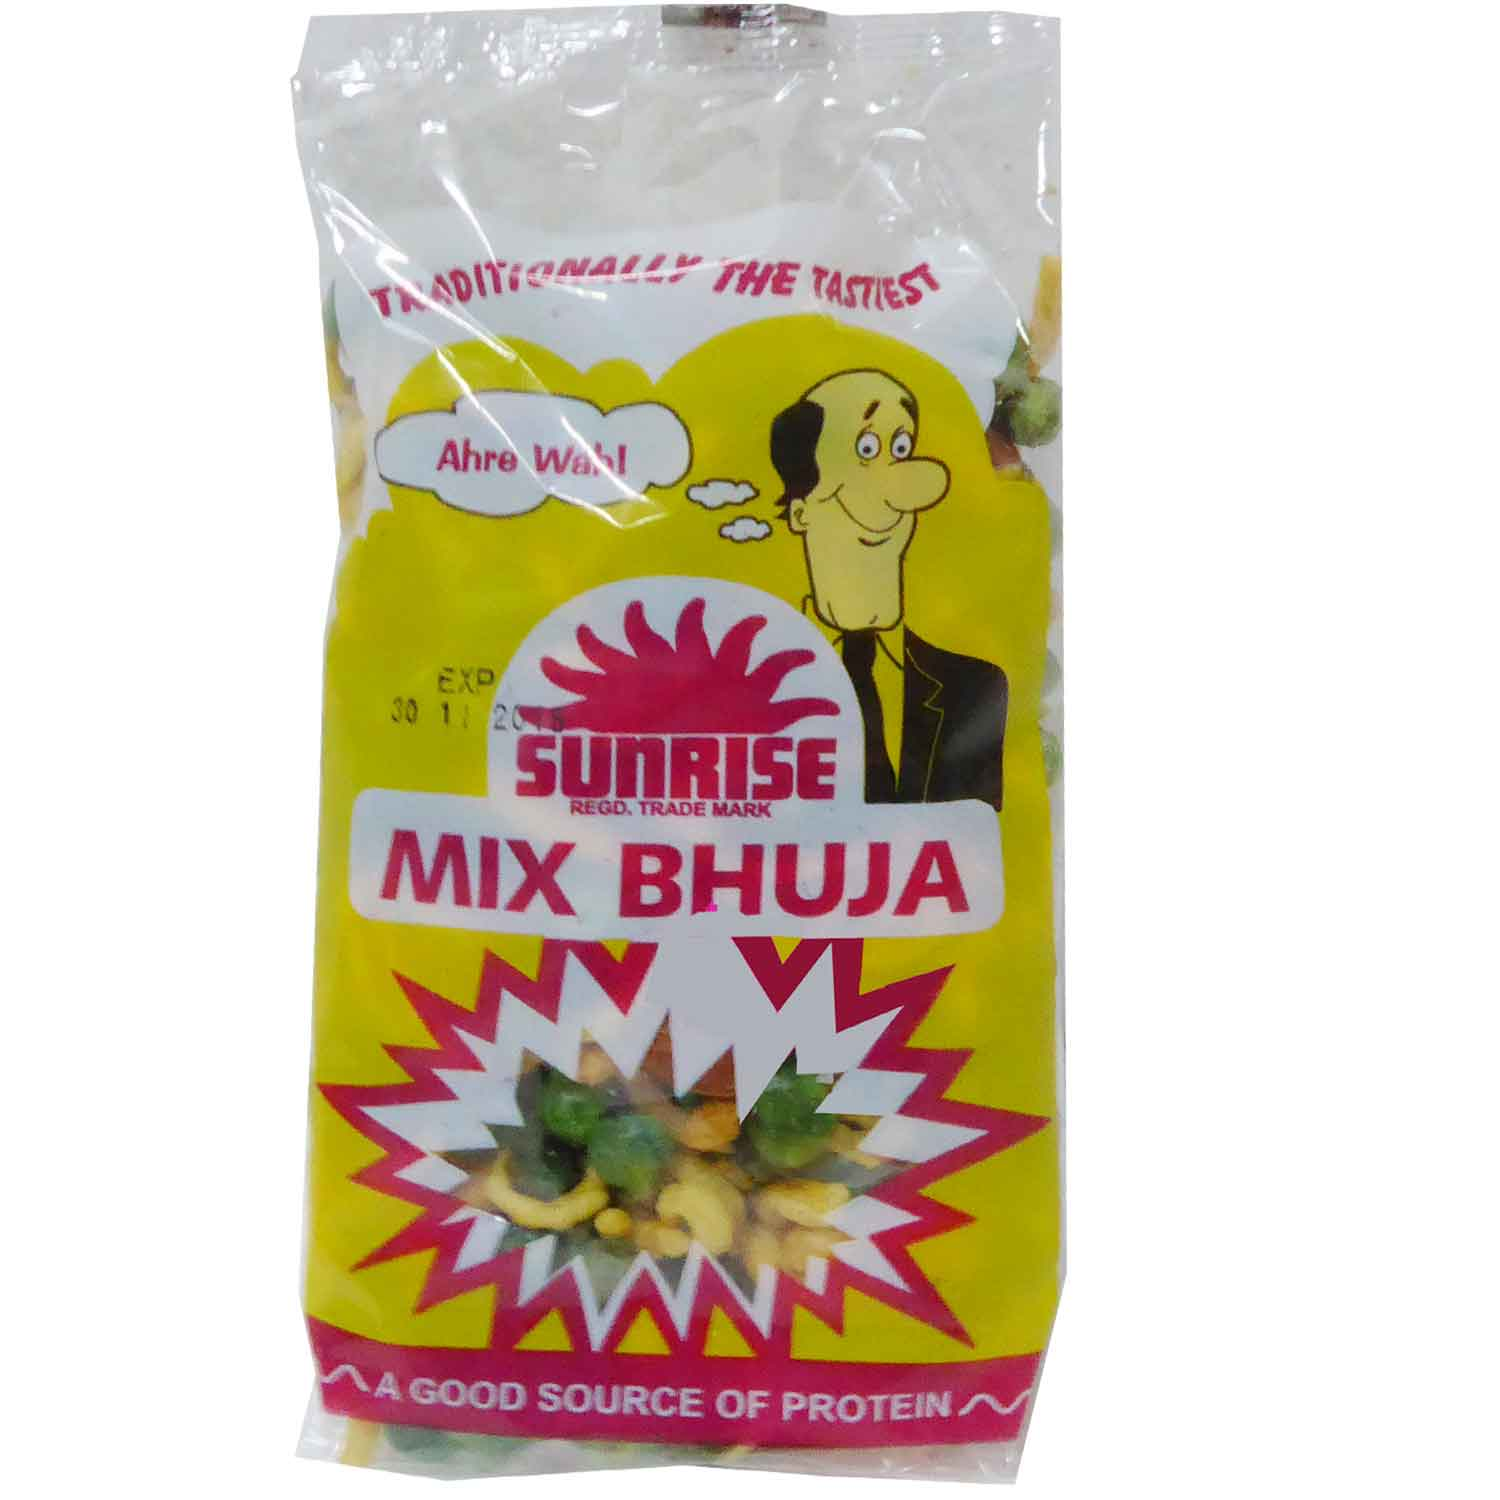 Sunrise Mixed Bhuja